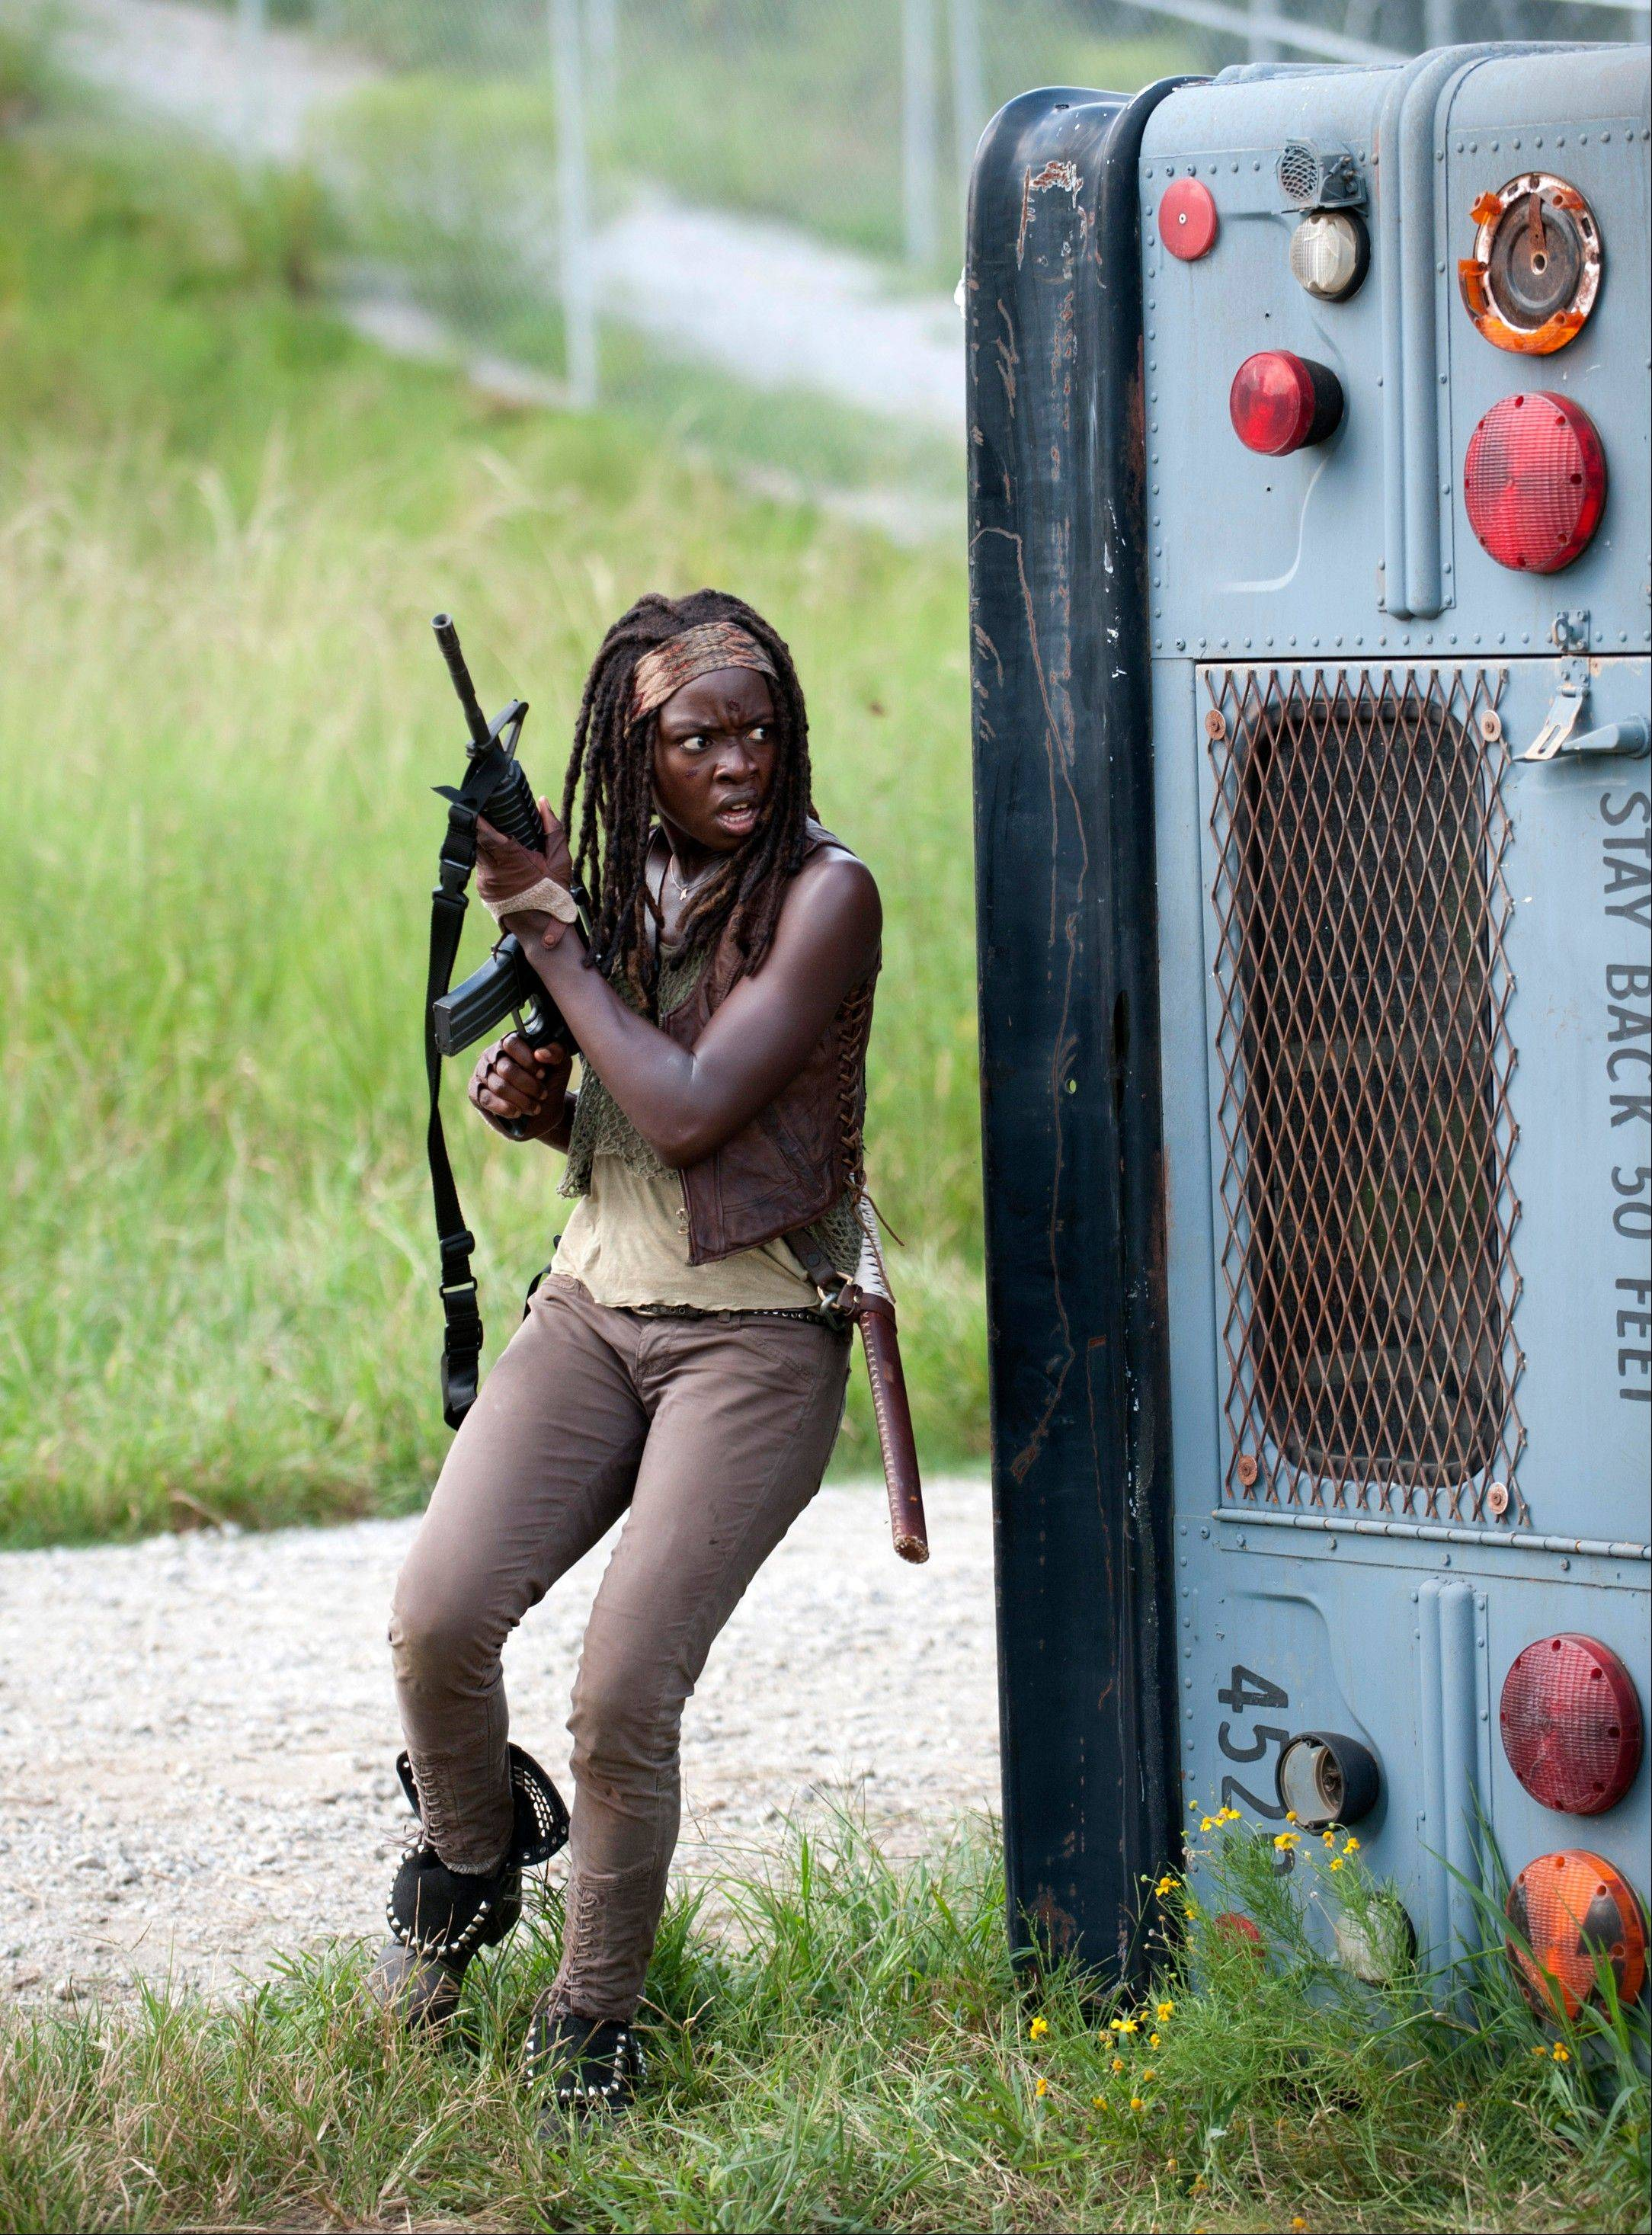 Danai Gurira hunts down invaders to their camp as Michonne in a scene from �The Walking Dead,� which resumes episodes from its fourth season on Feb. 9.